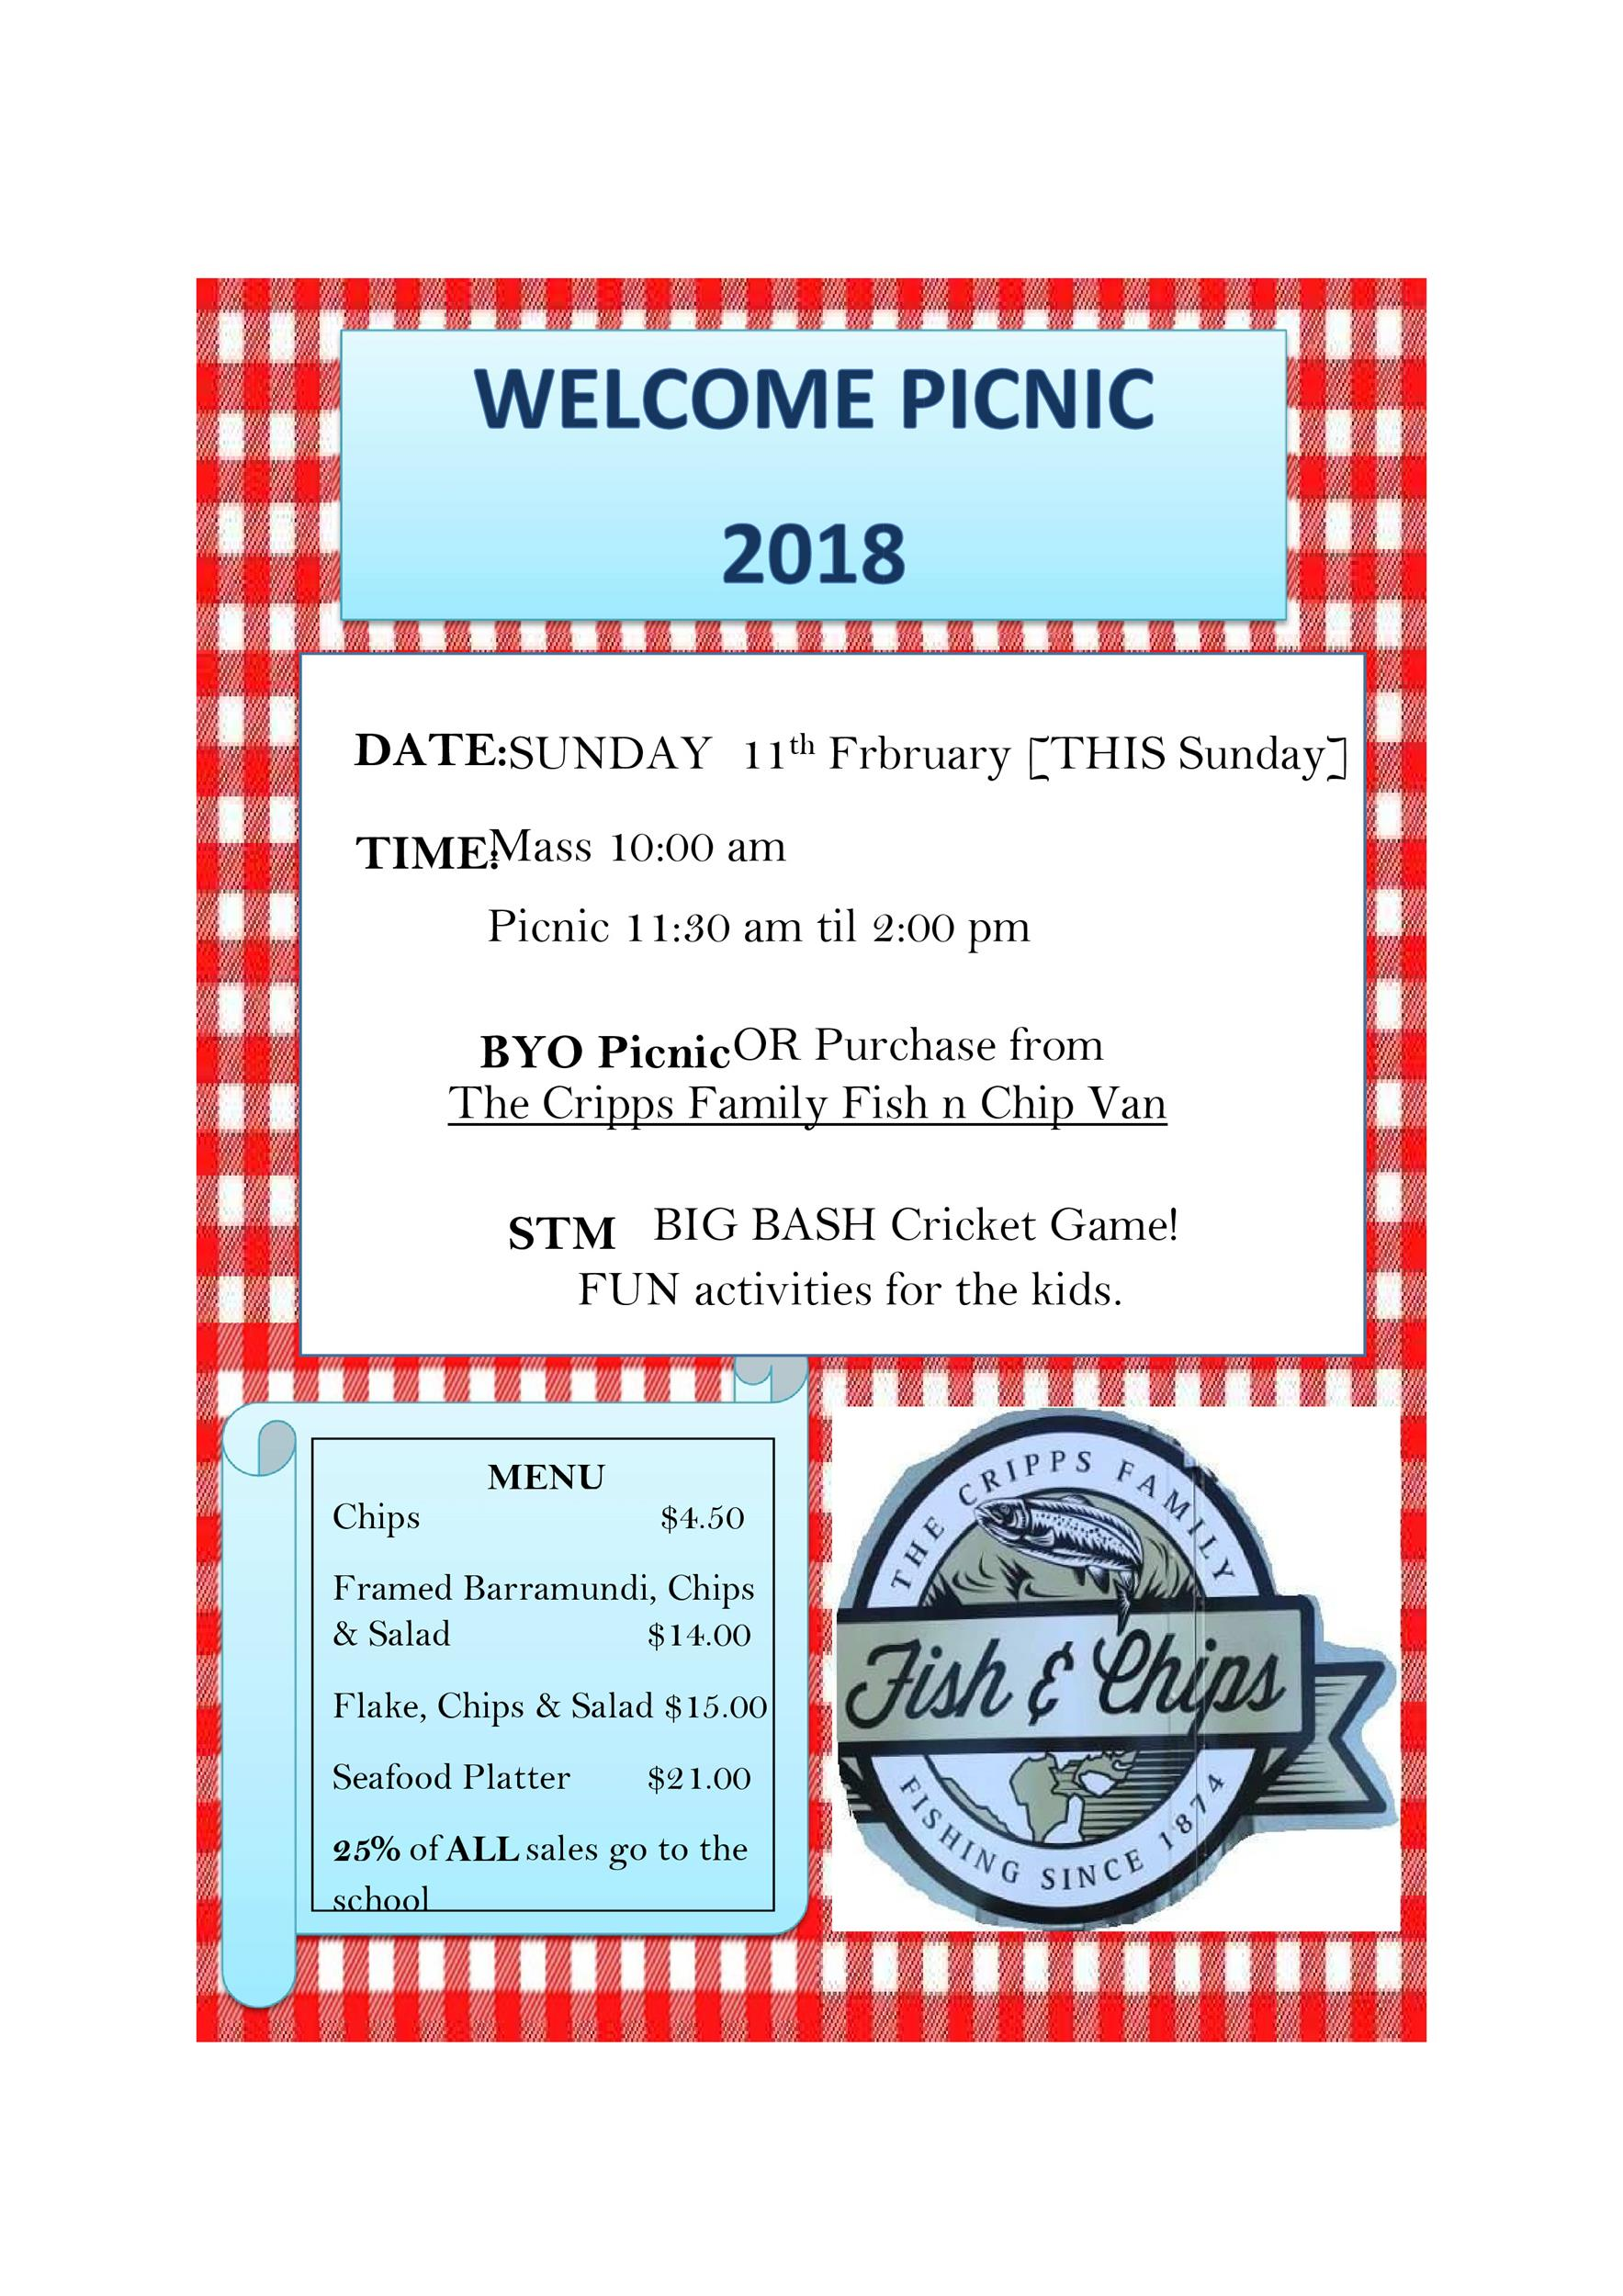 45 awesome picnic flyer templates free download template lab